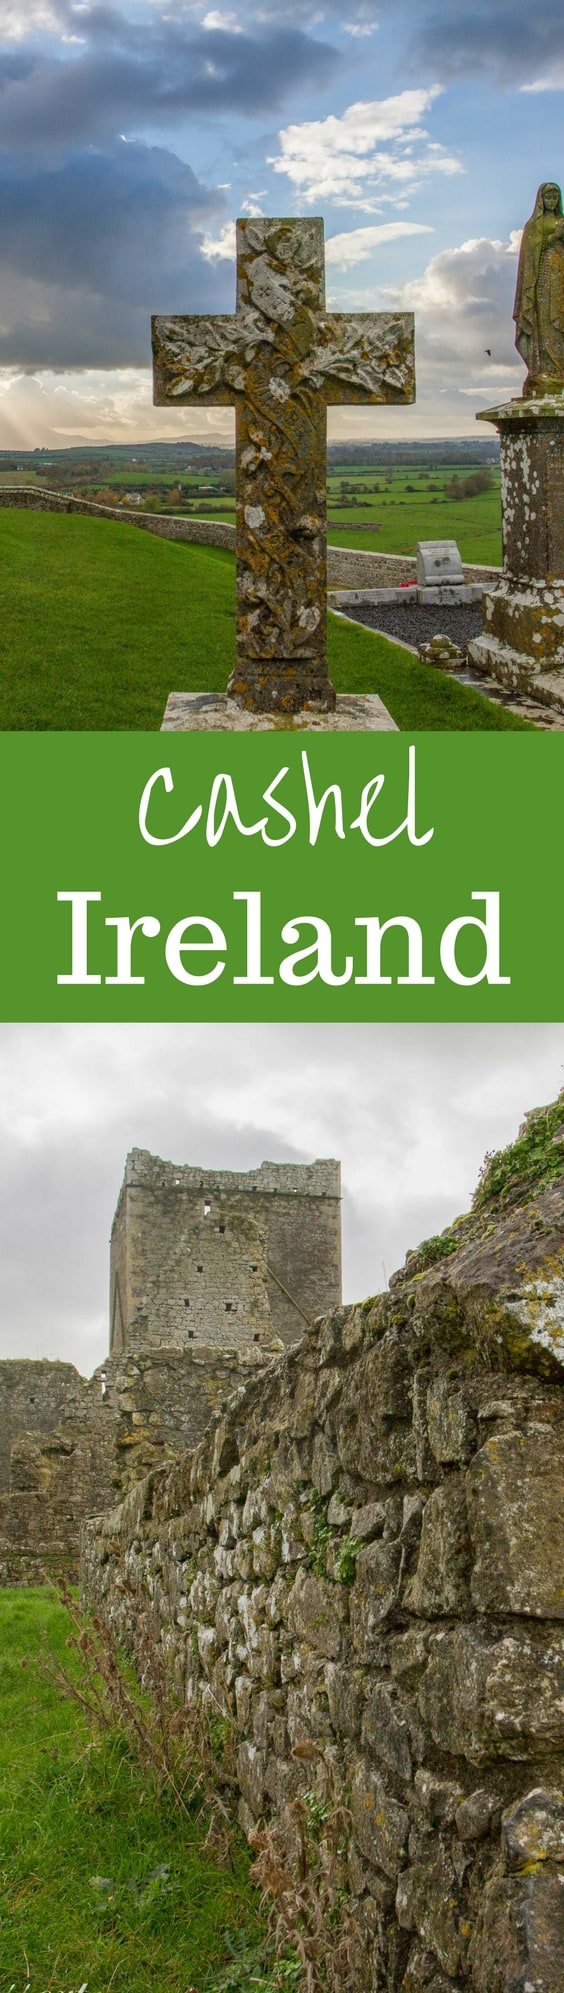 Cashel Ireland - a tour around town complete with a street festival, the Rock of Cashel, and the Hore Abby | www.savingdessert.com